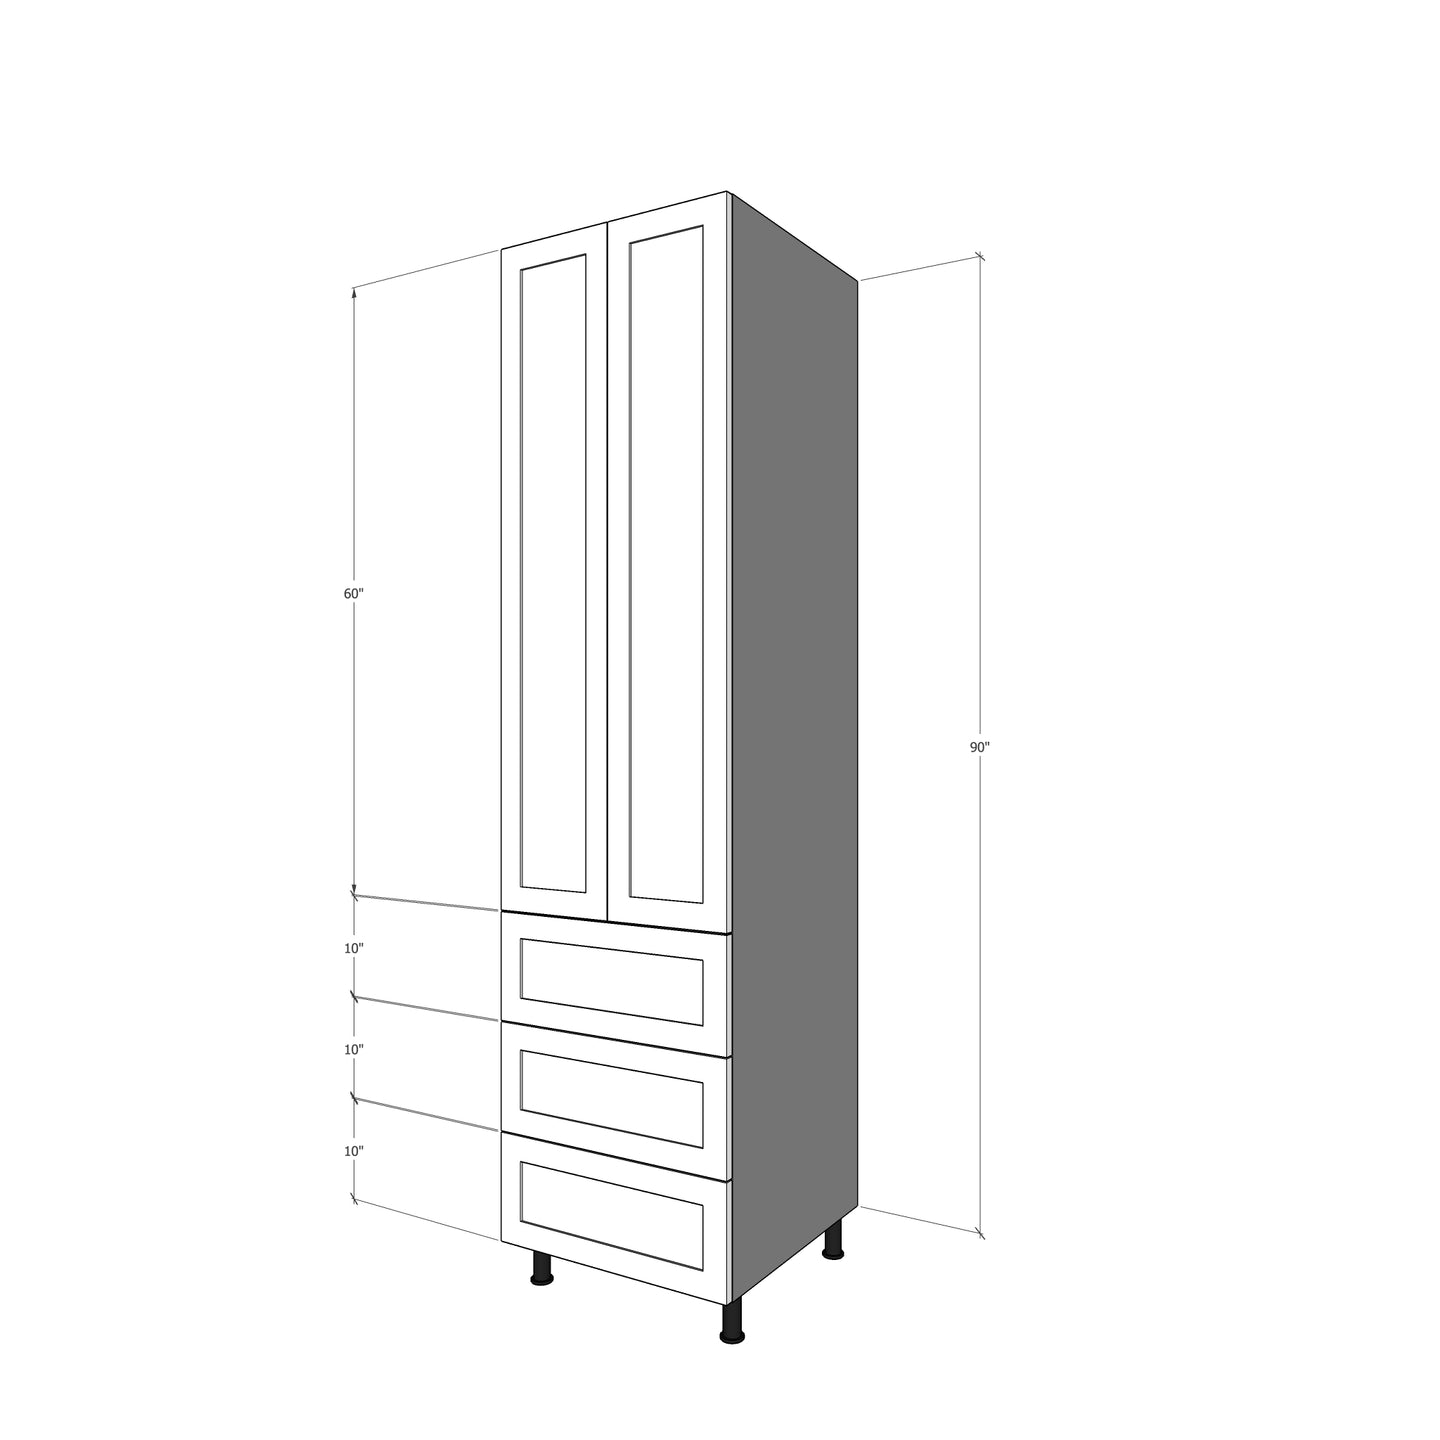 T-2D3M-30 Two Doors and Three Drawers for IKEA Sektion 90